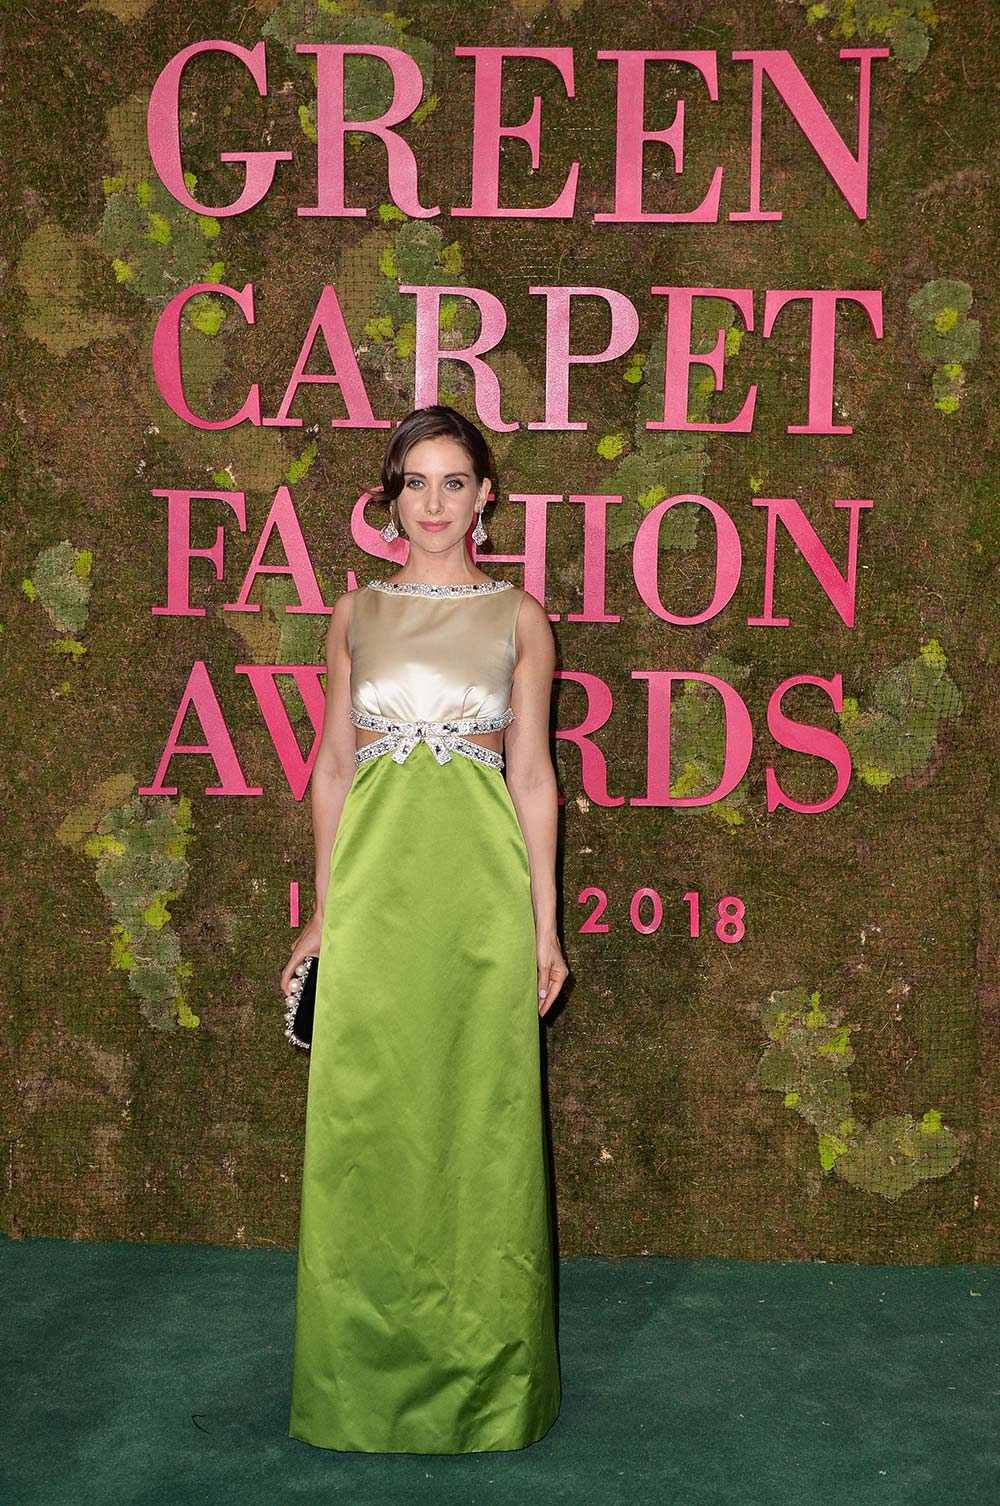 Green Carpet Fashion Awards 2018 - Alison Brie - Hair & Makeup Massimo Serini